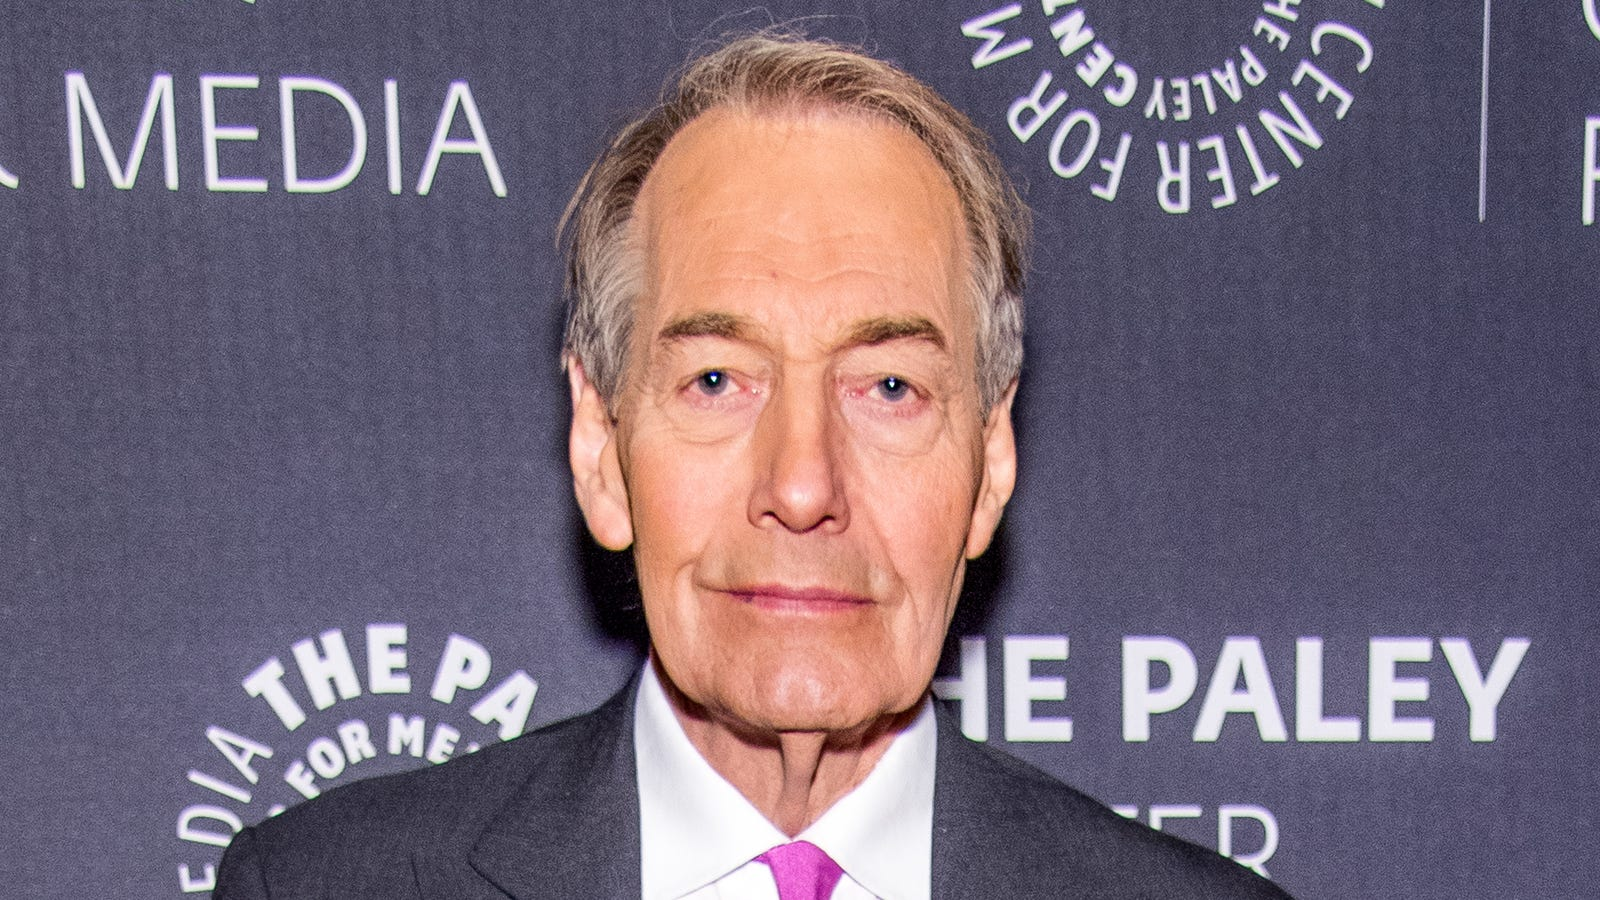 27 more women accuse Charlie Rose of harassment, really derailing his comeback plans